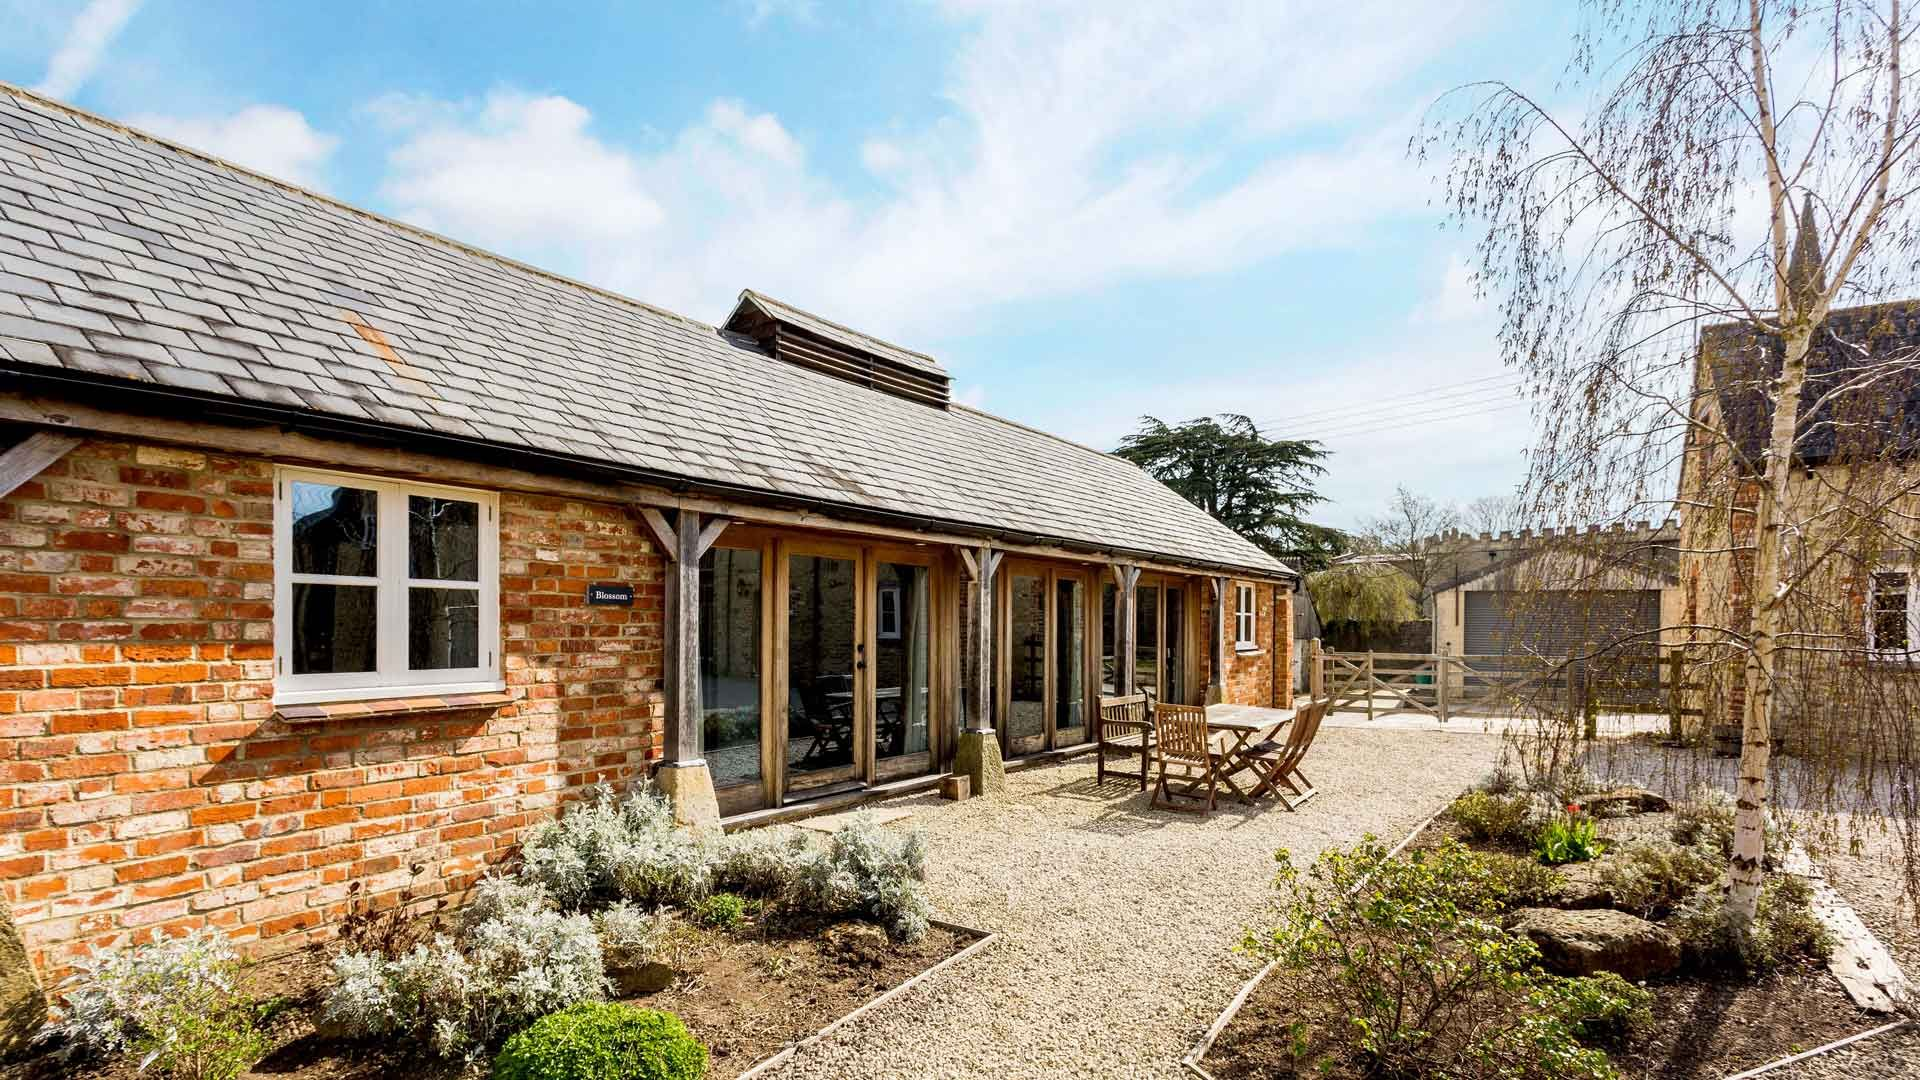 Blossom Barn - StayCotswold